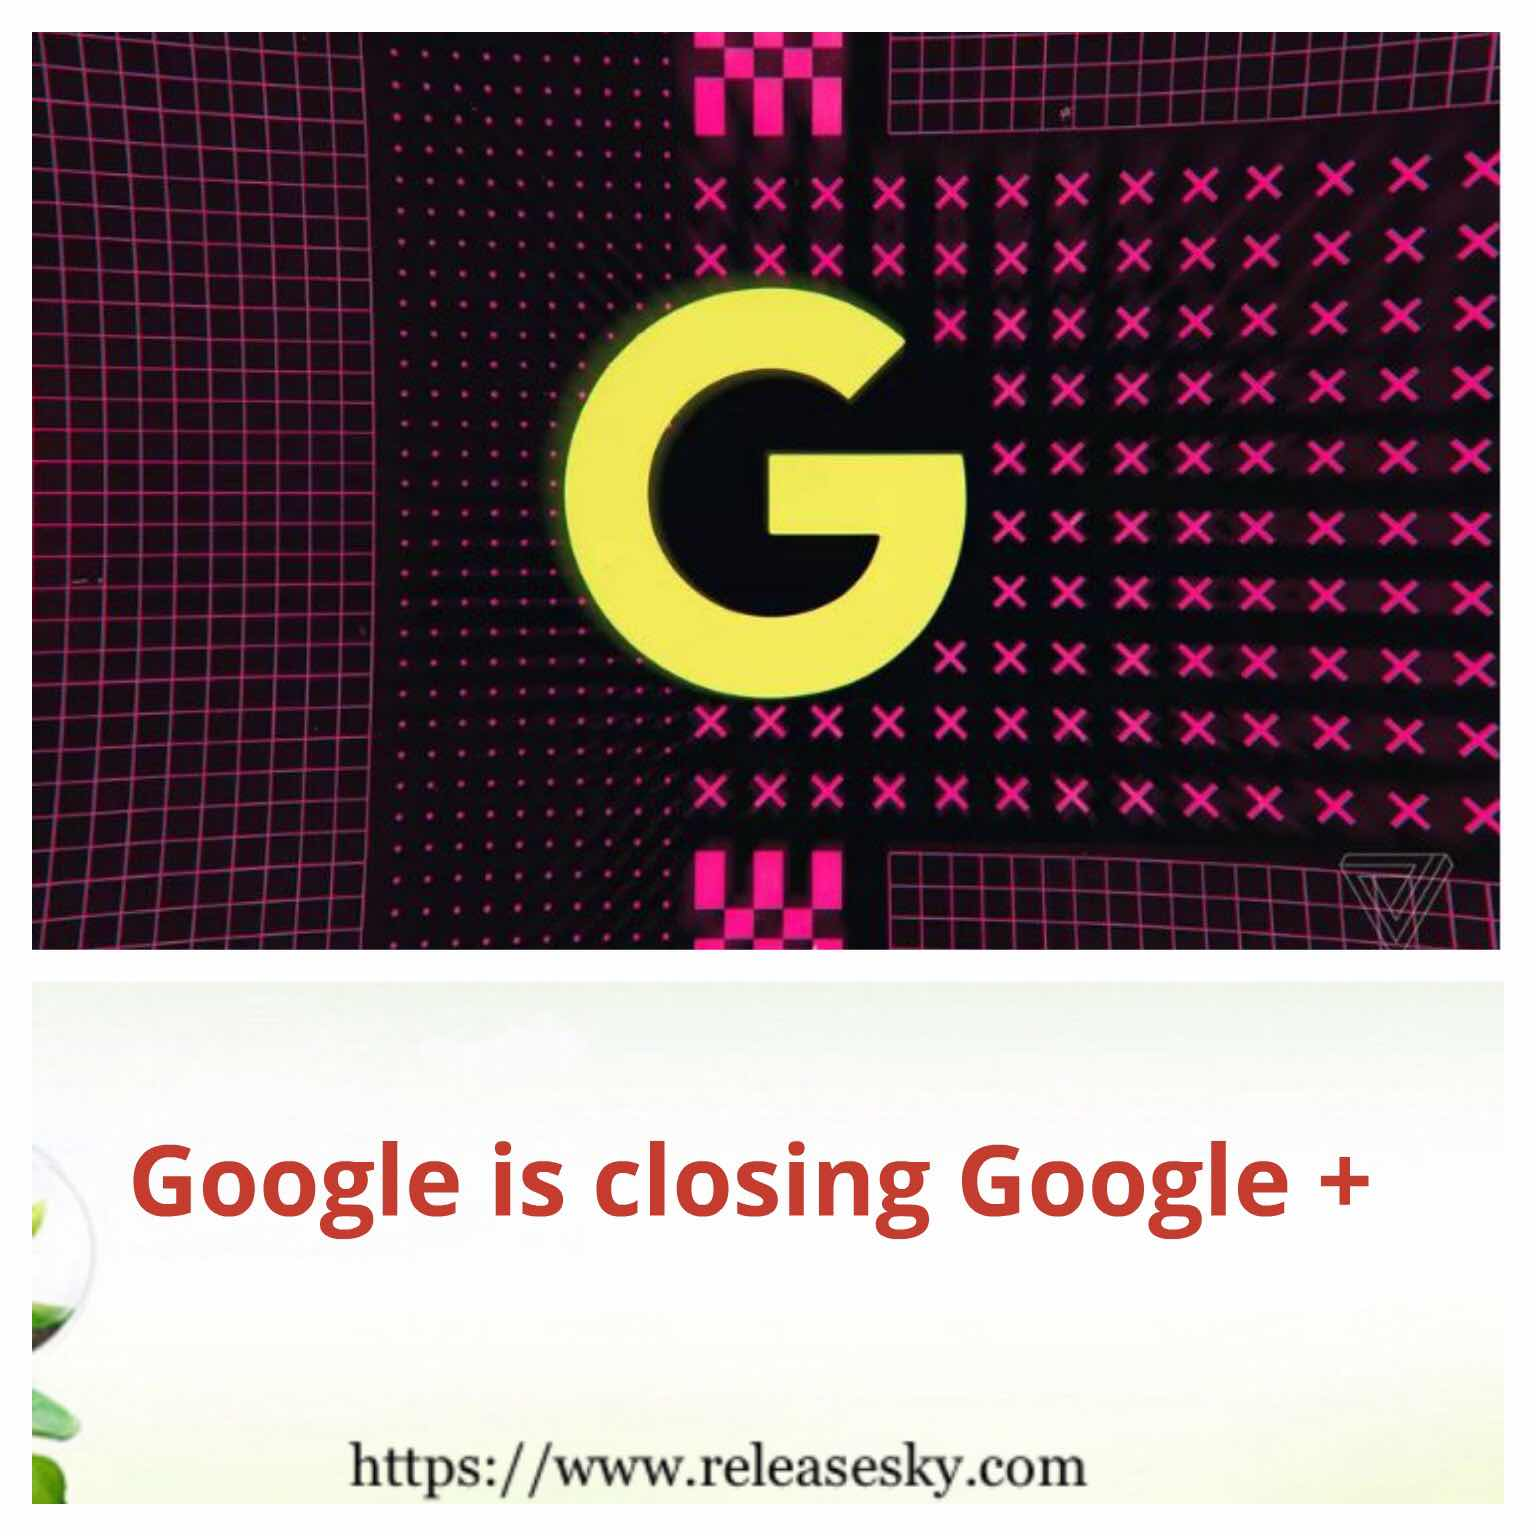 Google is closing Google+